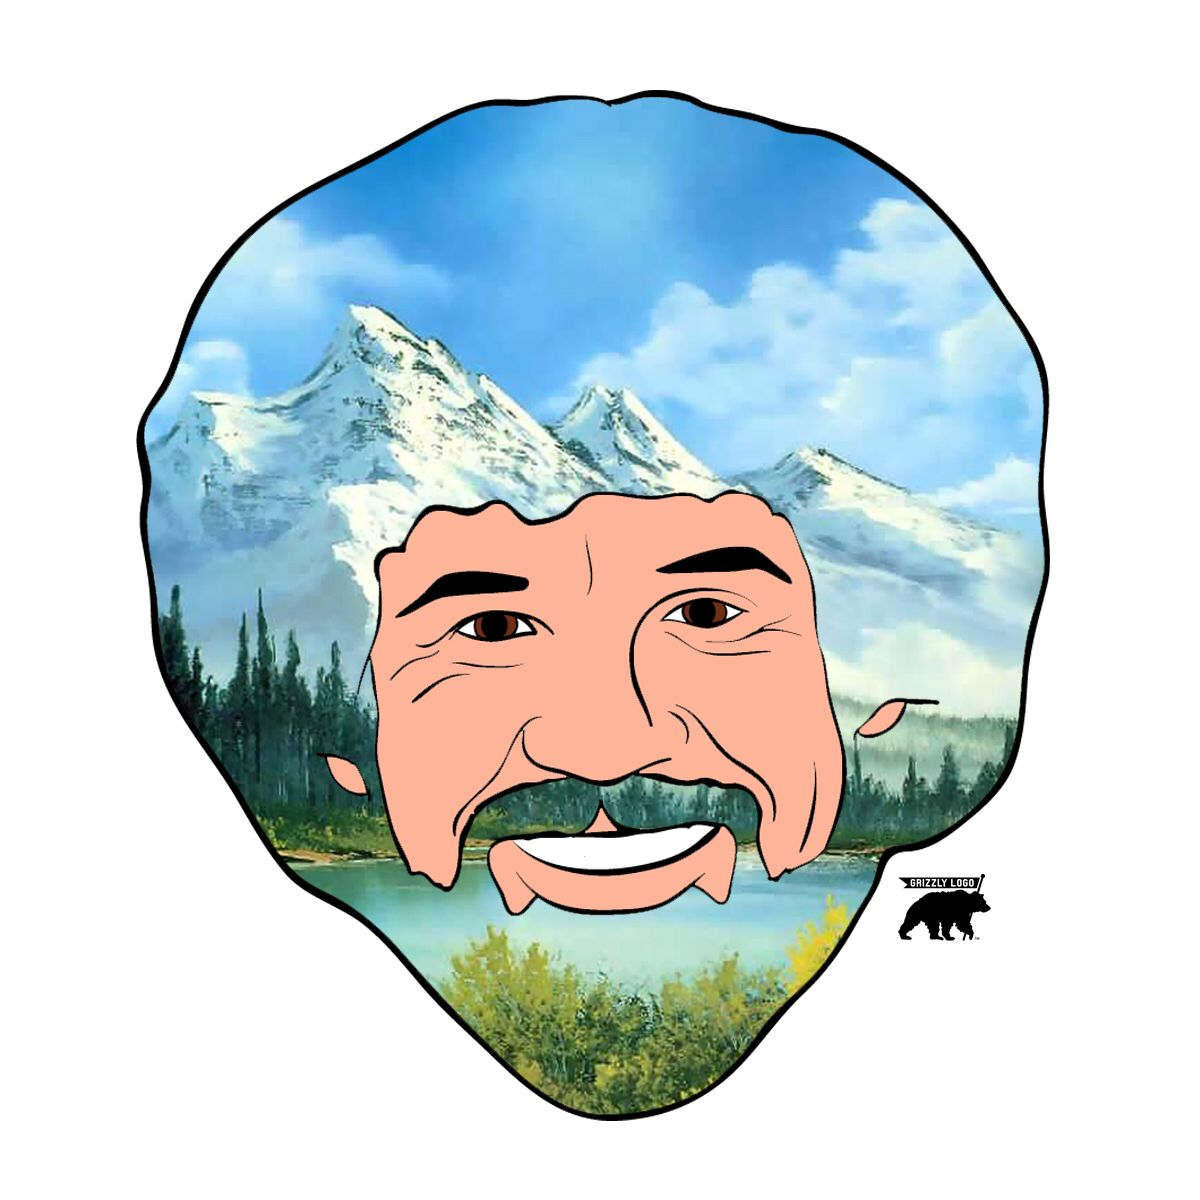 1200x1200 Mr. Happy Trees Illustration Bob Ross Amp Grizzly Logo Colab